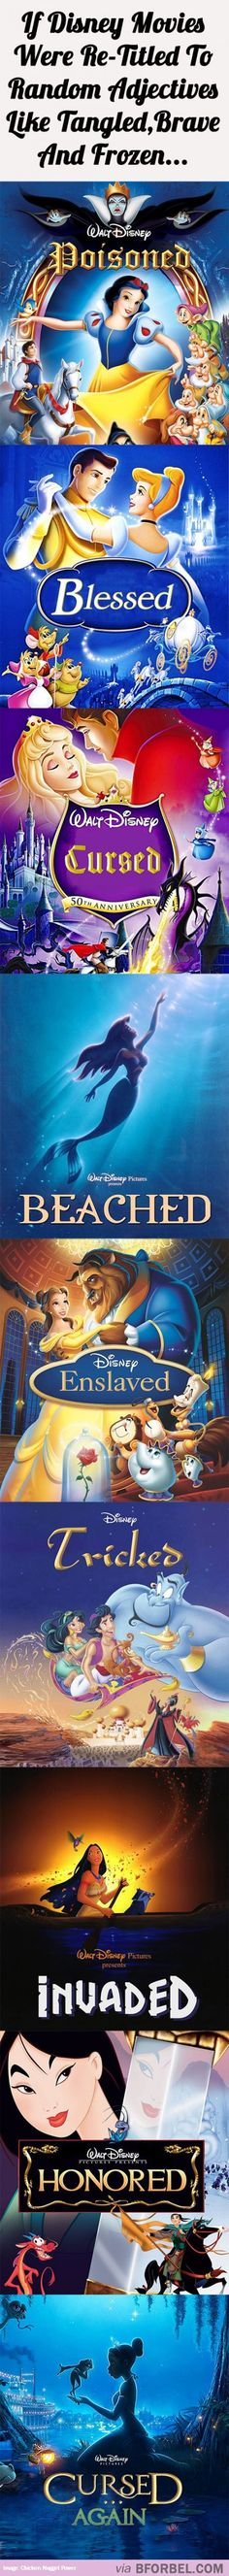 "If Disney Movies Were Retitled To Random Adjectives Like ""Frozen"" And ""Tangled""…this made me laugh!"